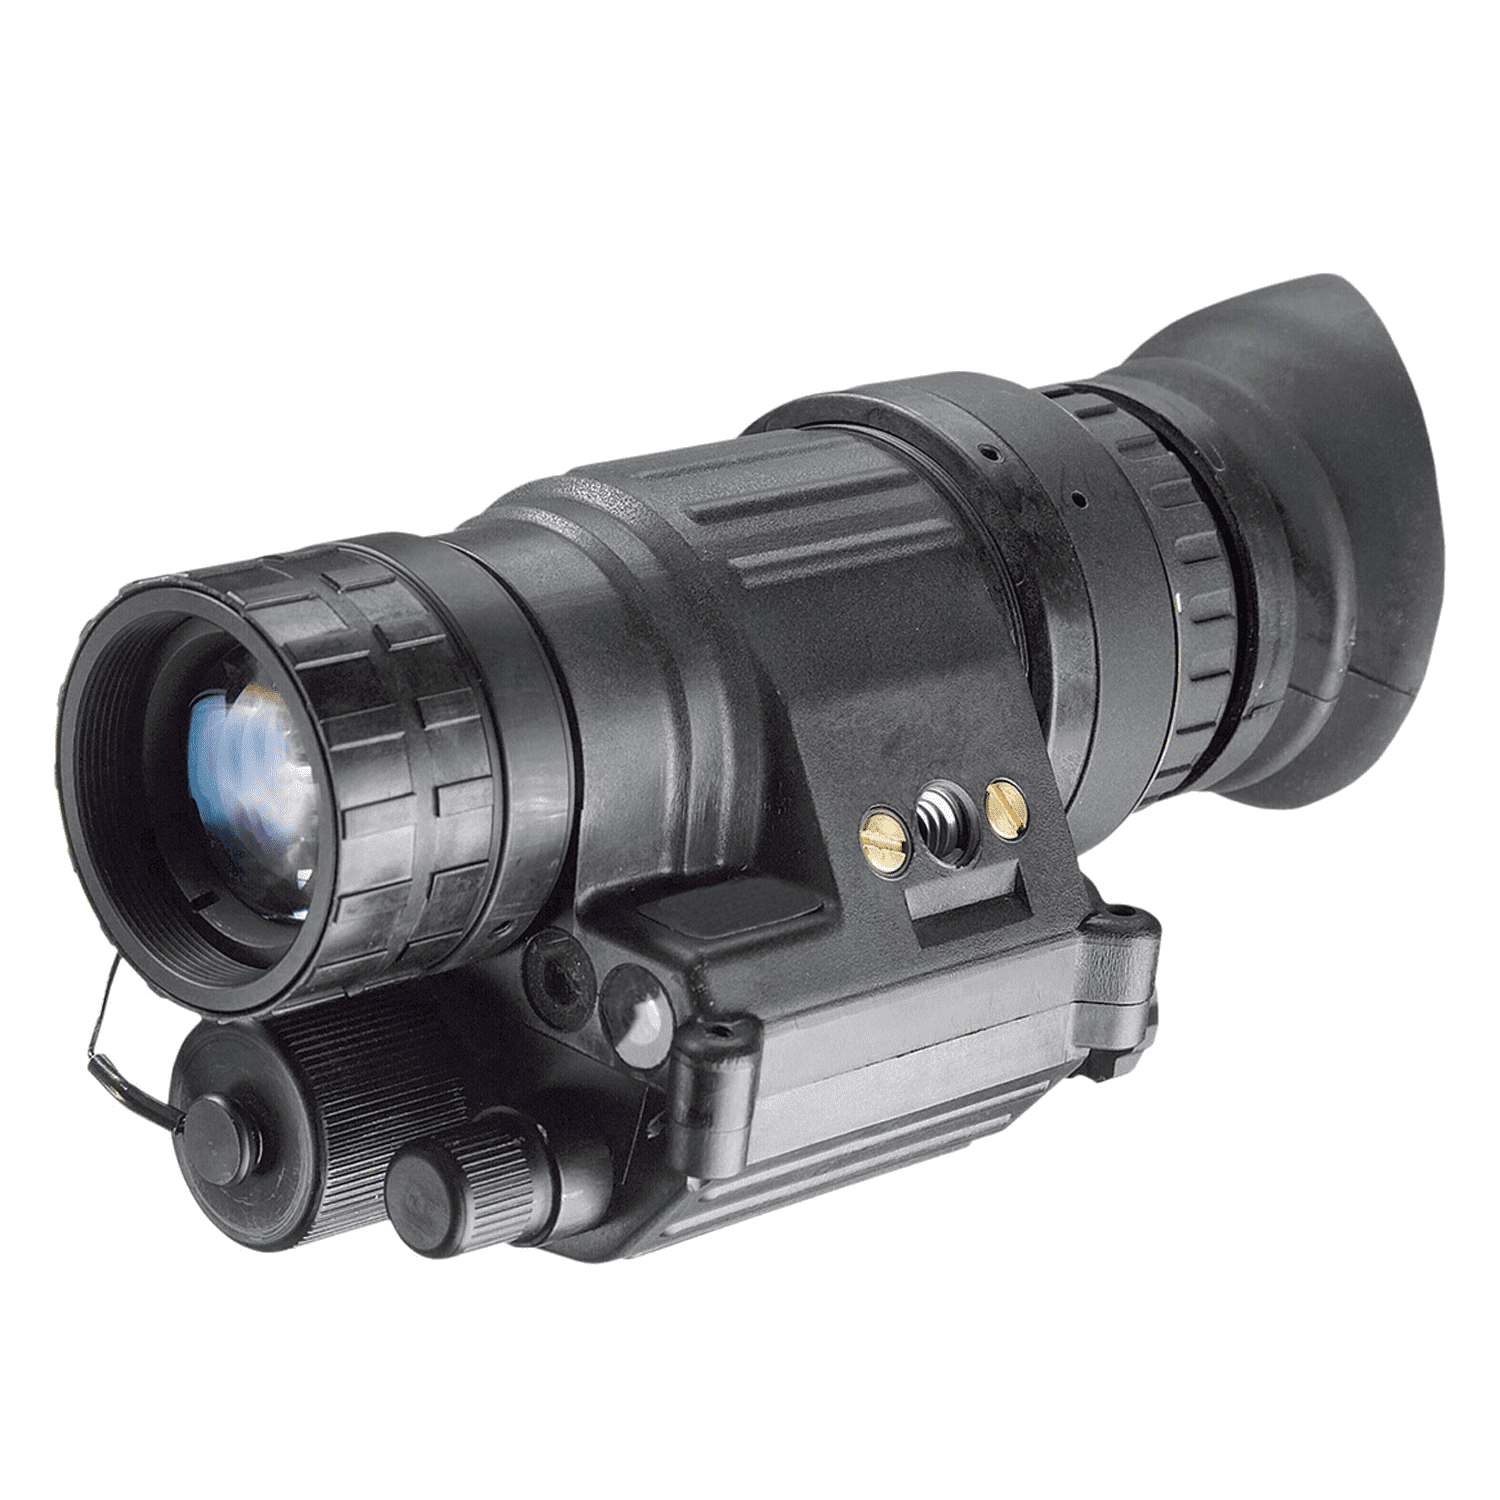 Armasight by FLIR PVS-14-51 Gen 3G Night Vision Monocular